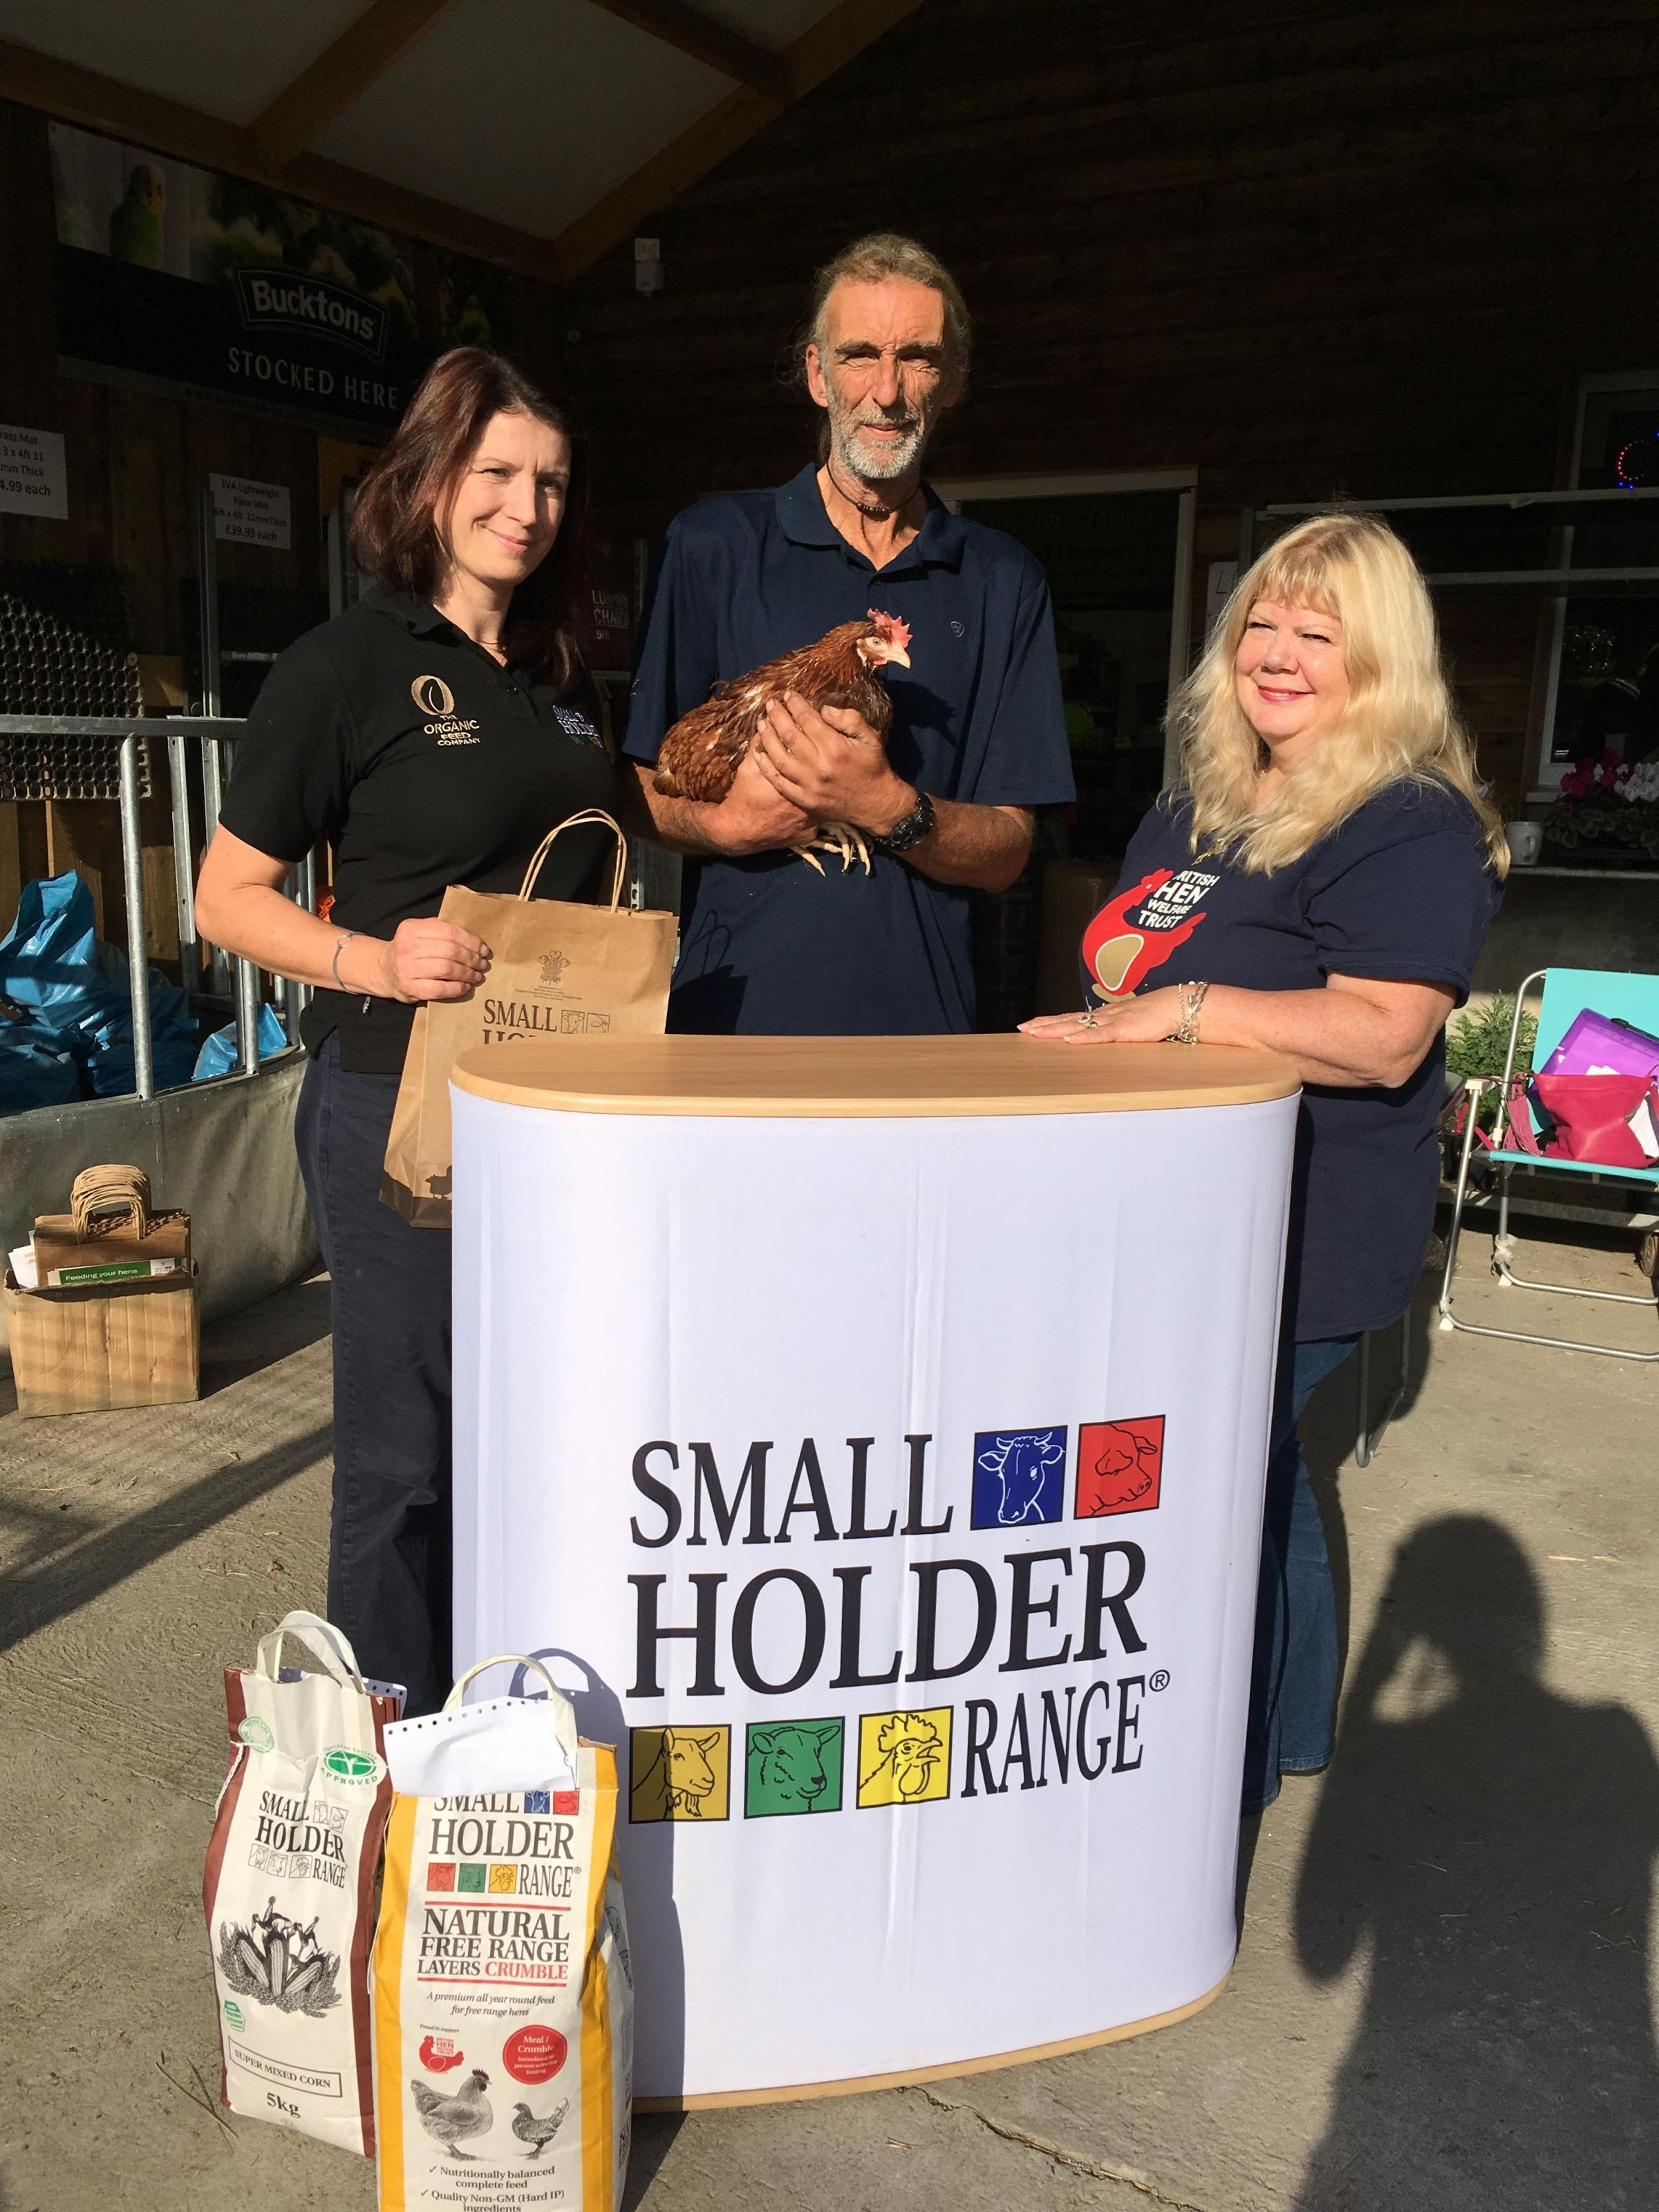 : David Godwyn, who re-homed the 1,000th hen from the BHWT's Redruth team on Sunday, with Isabel Greenaway from Allen & Page who are giving him some hen feed as a gift, and volunteer Babs Sherriff.